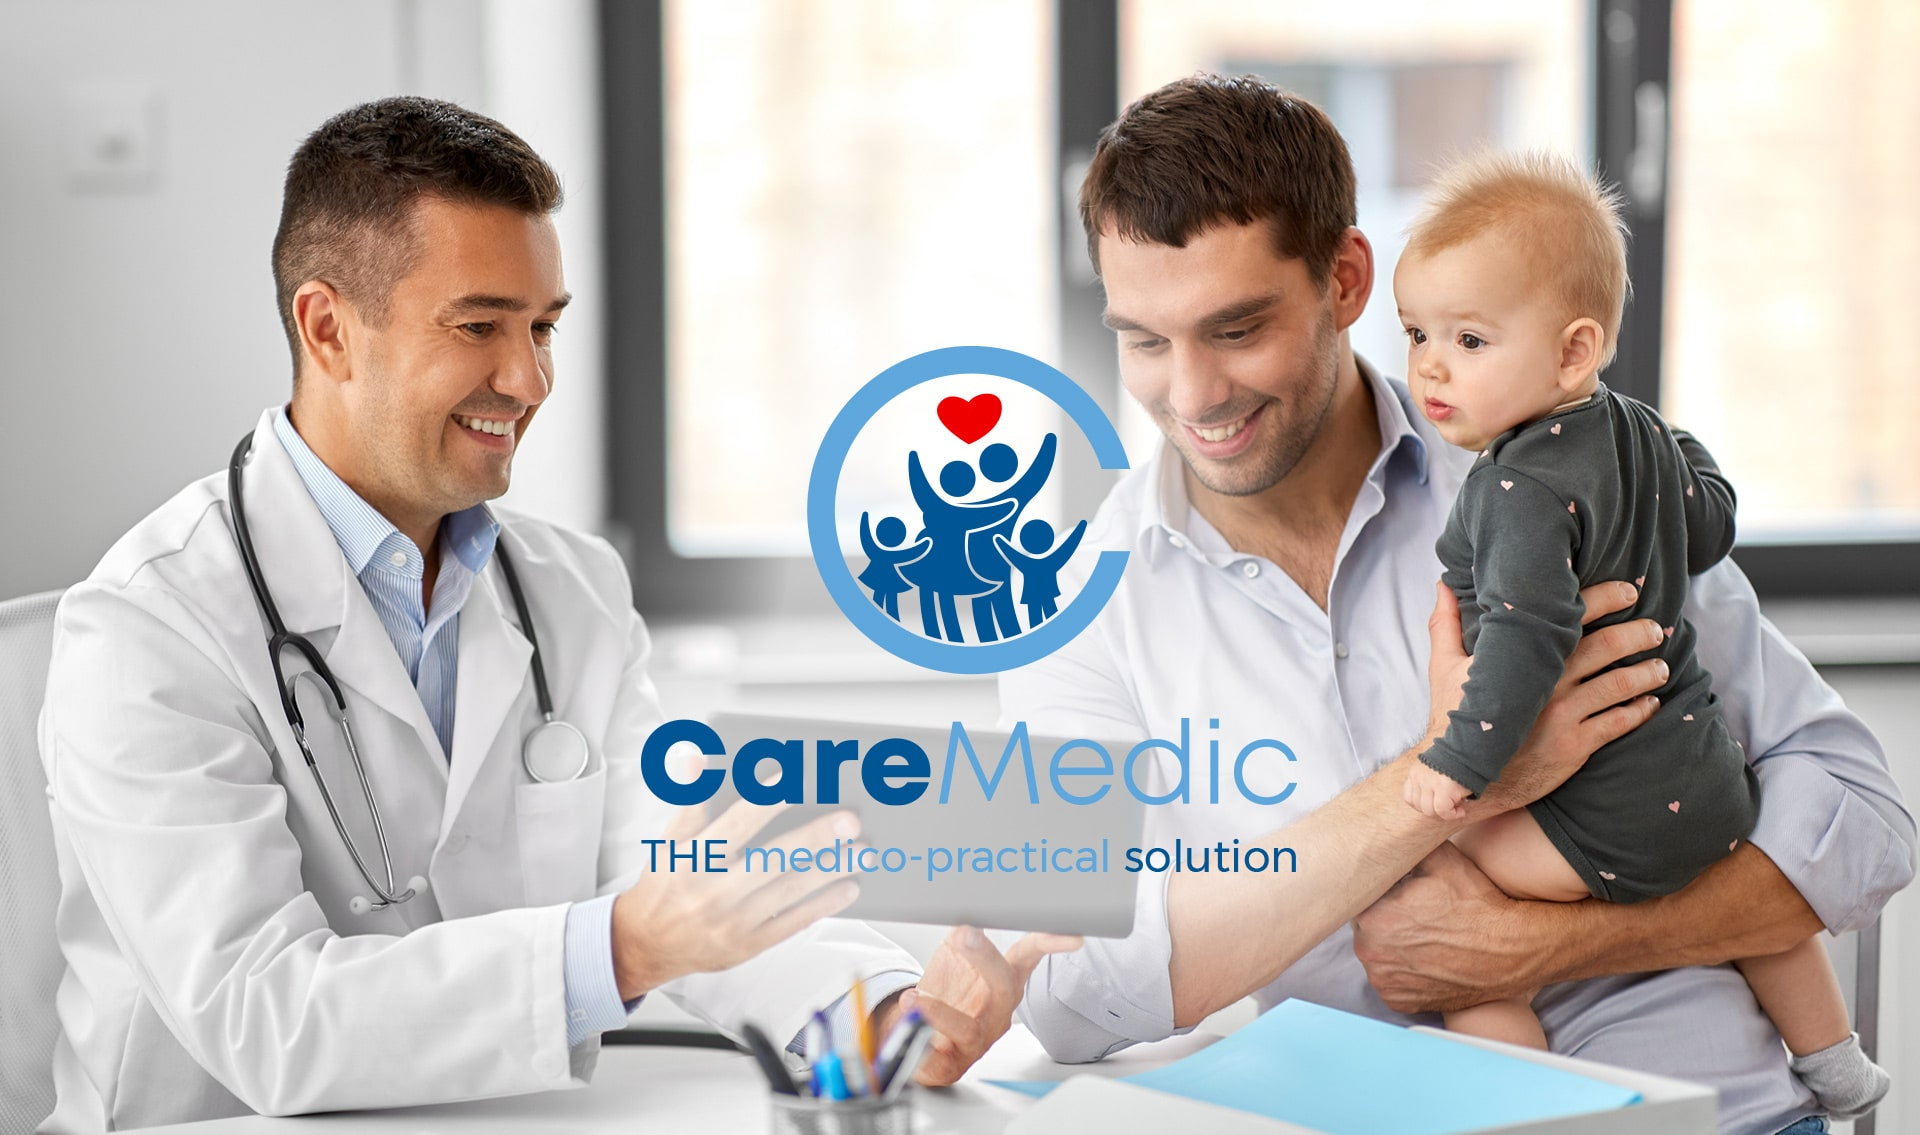 caremedic solution platform and application for health care professionals